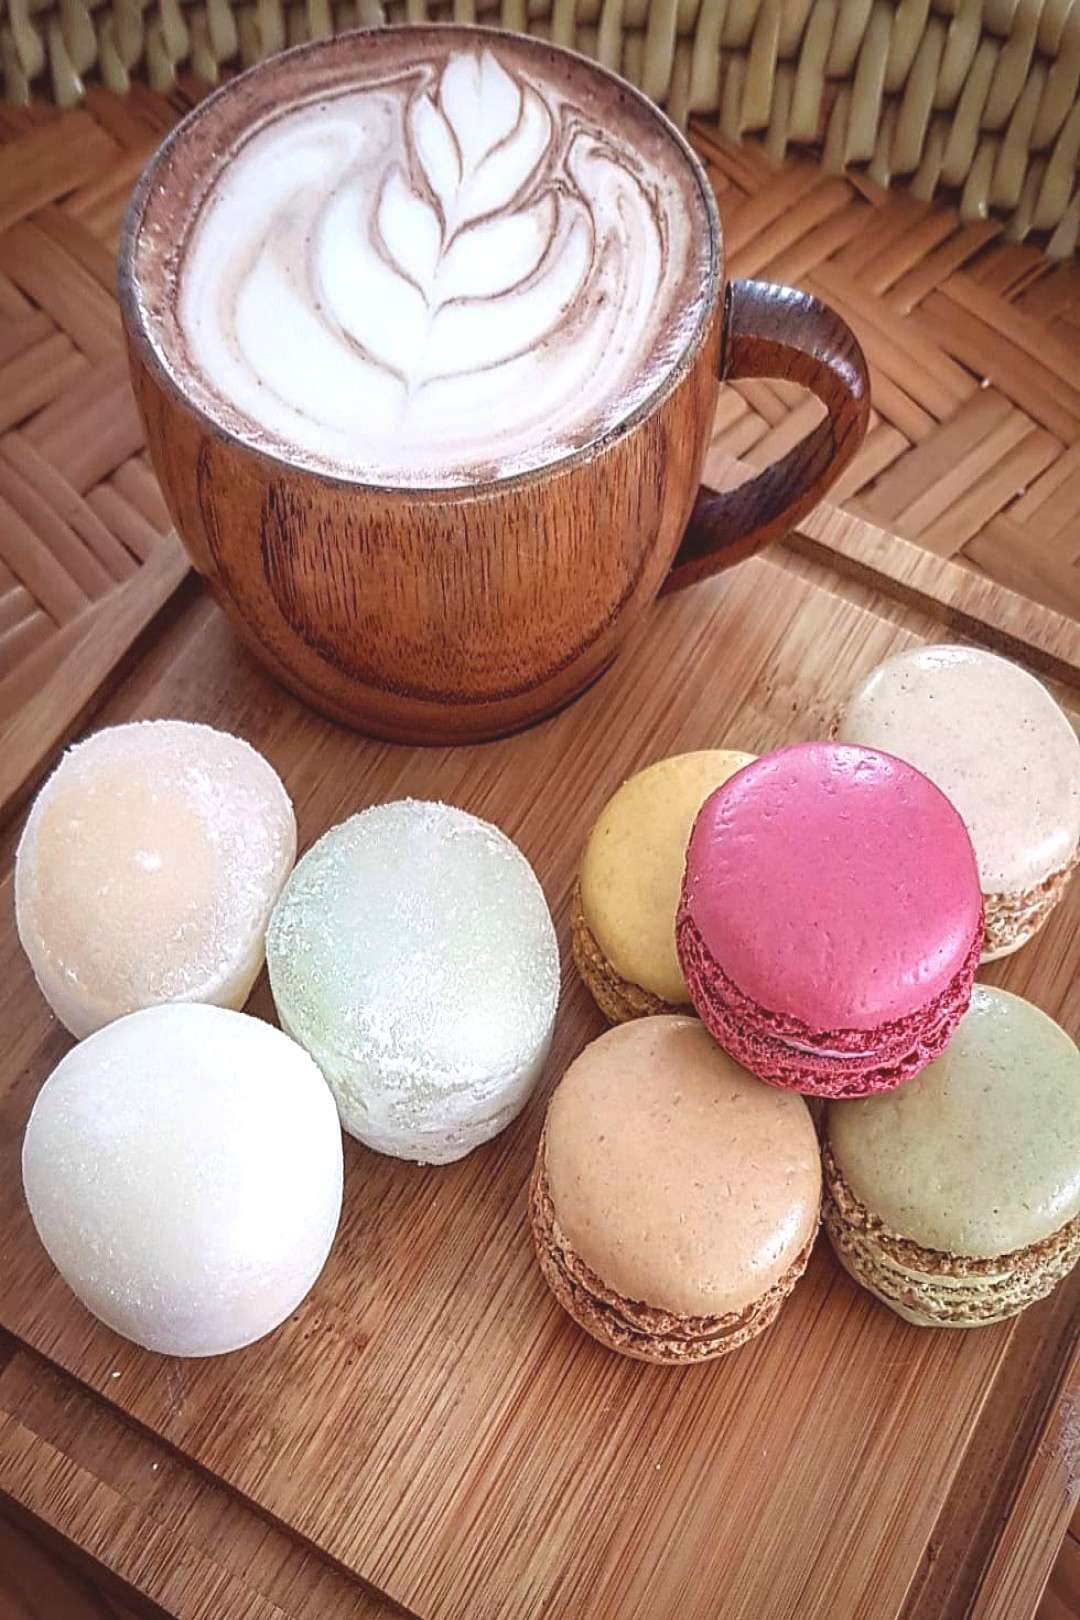 Get in my belly yummy sweets.. # # #macaronslover #mochiicecream